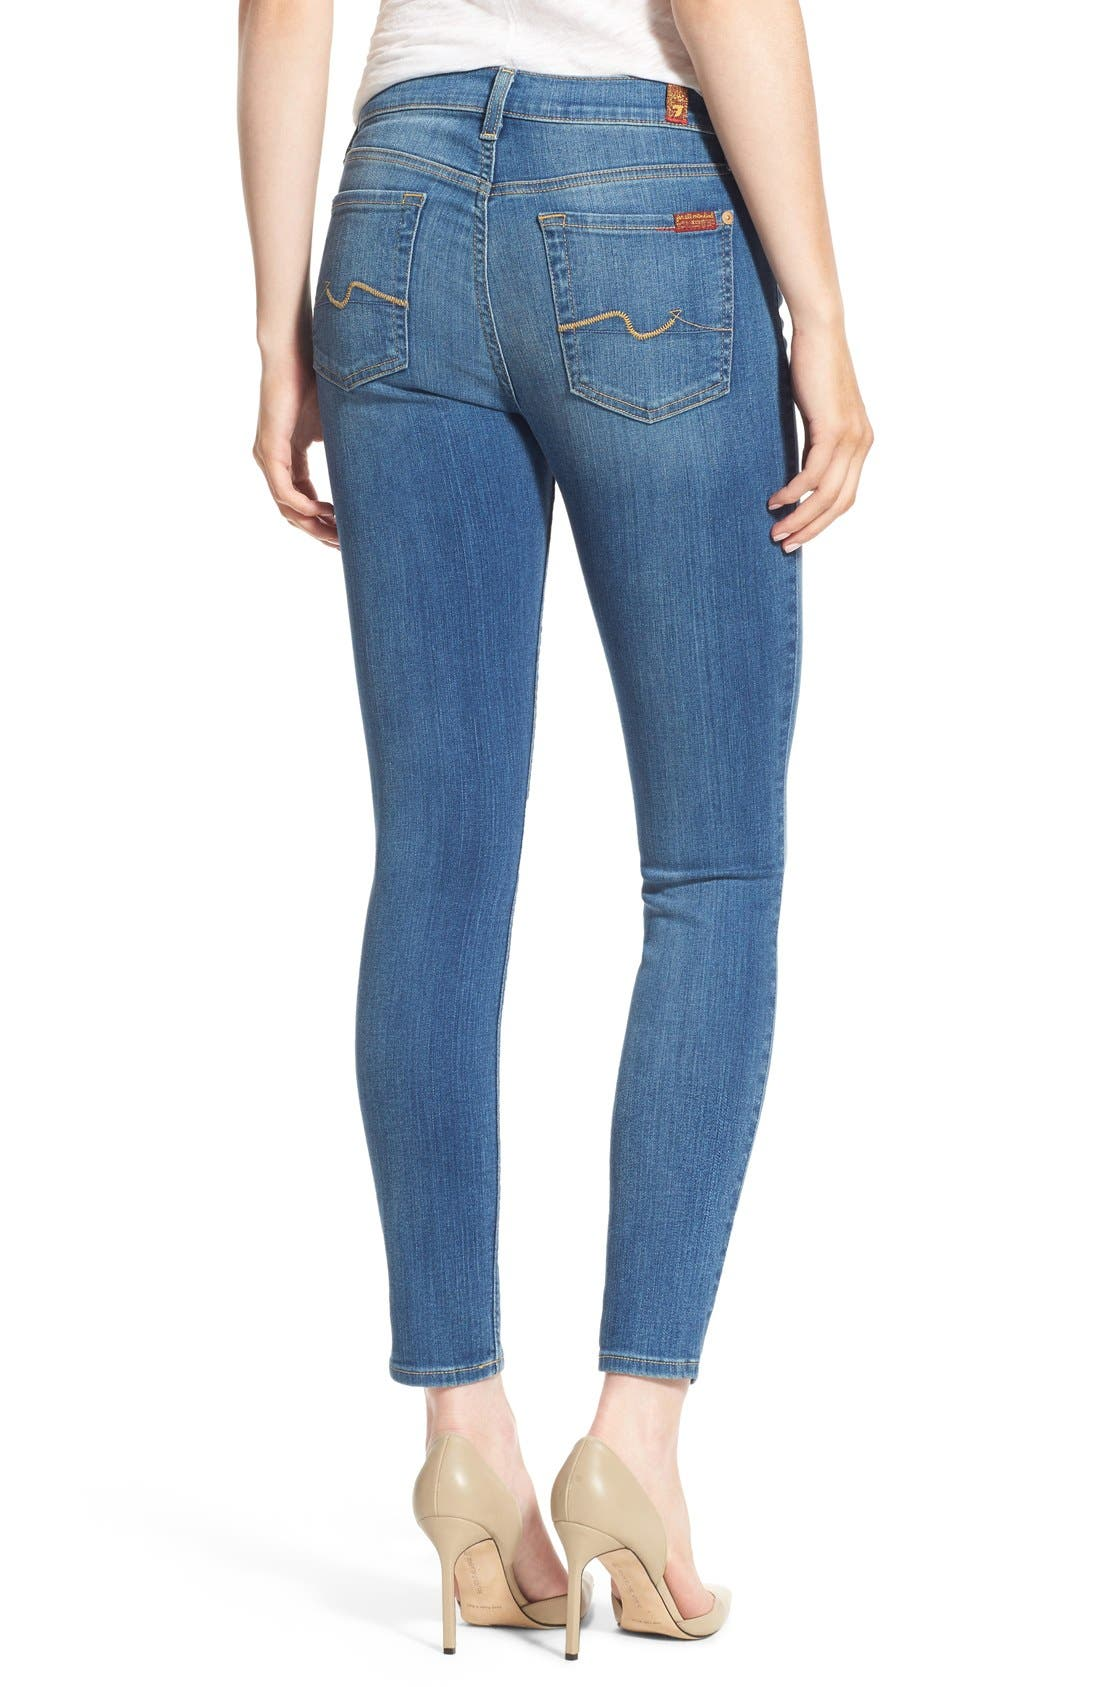 Alternate Image 2  - 7 For All Mankind® Skinny Ankle Jeans (Supreme Vibrant Blue)